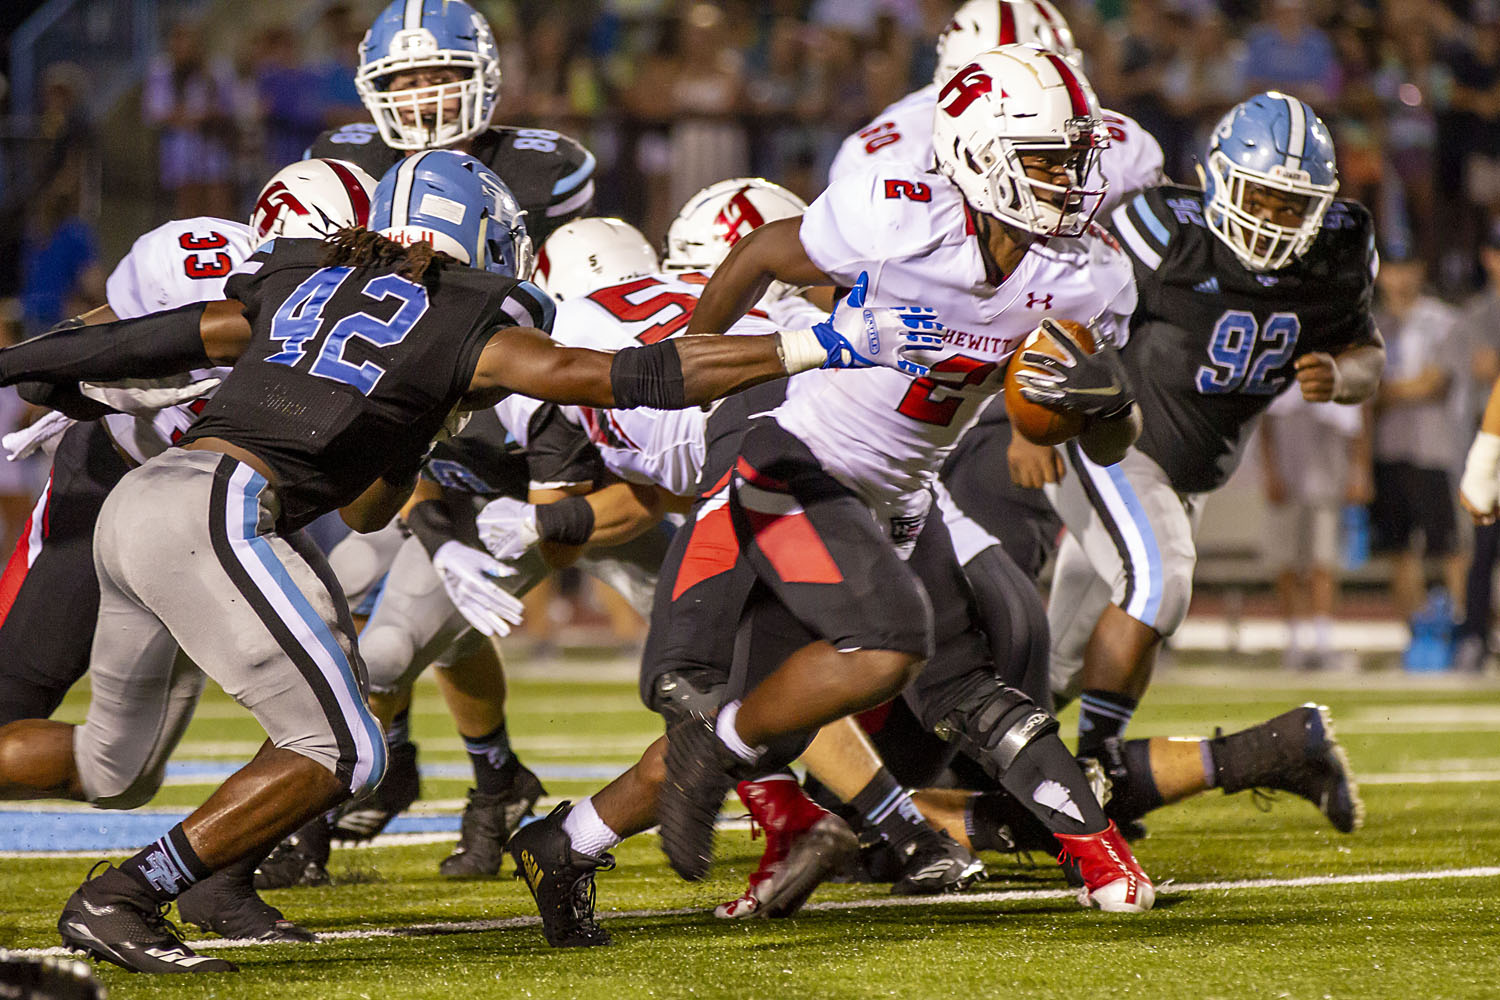 Pinson Valley takes the sting out of Oxford in a 28-13 win on the road